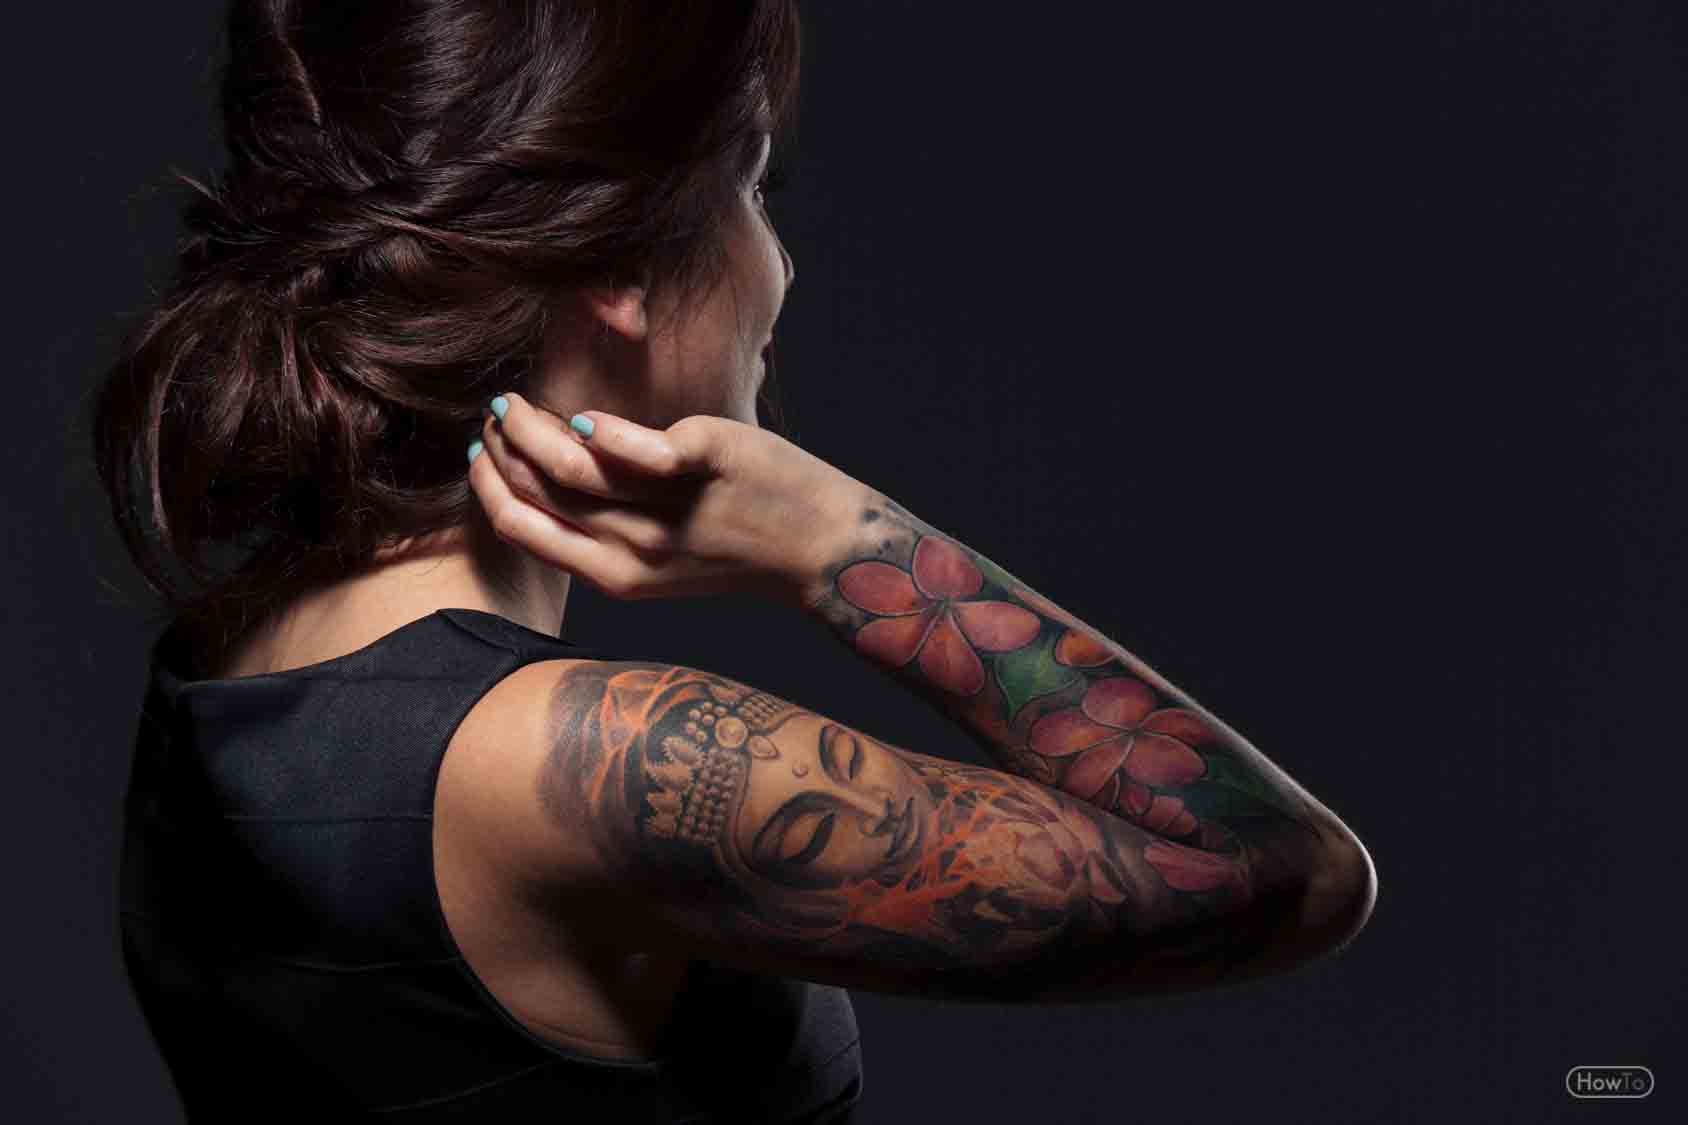 10 Effective Steps to Take Care of your New Tattoo - Howto